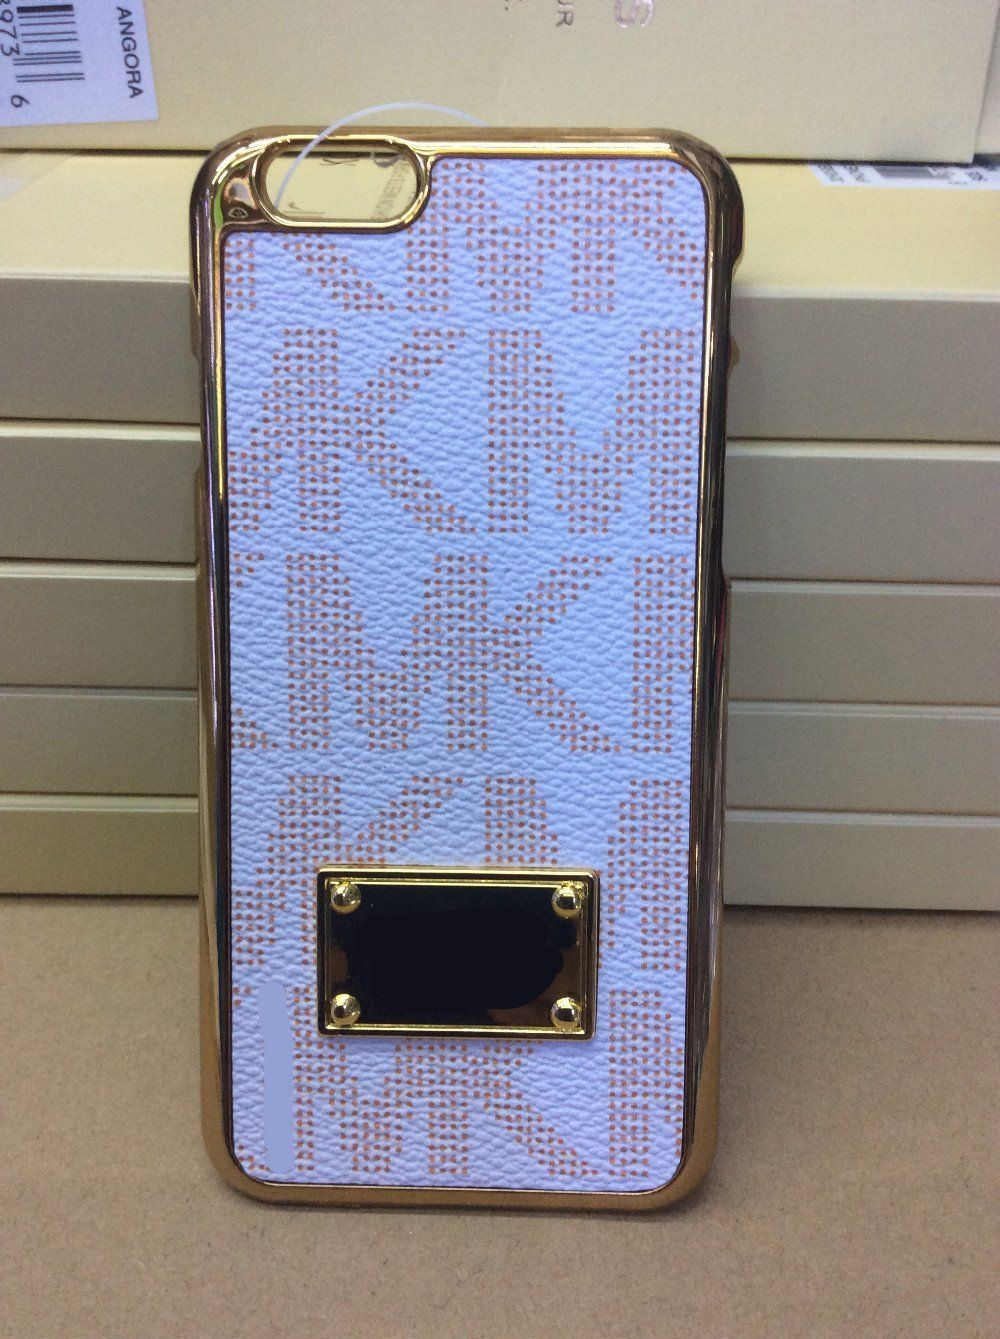 Michael kors iphone 7 white leather look with gold trim